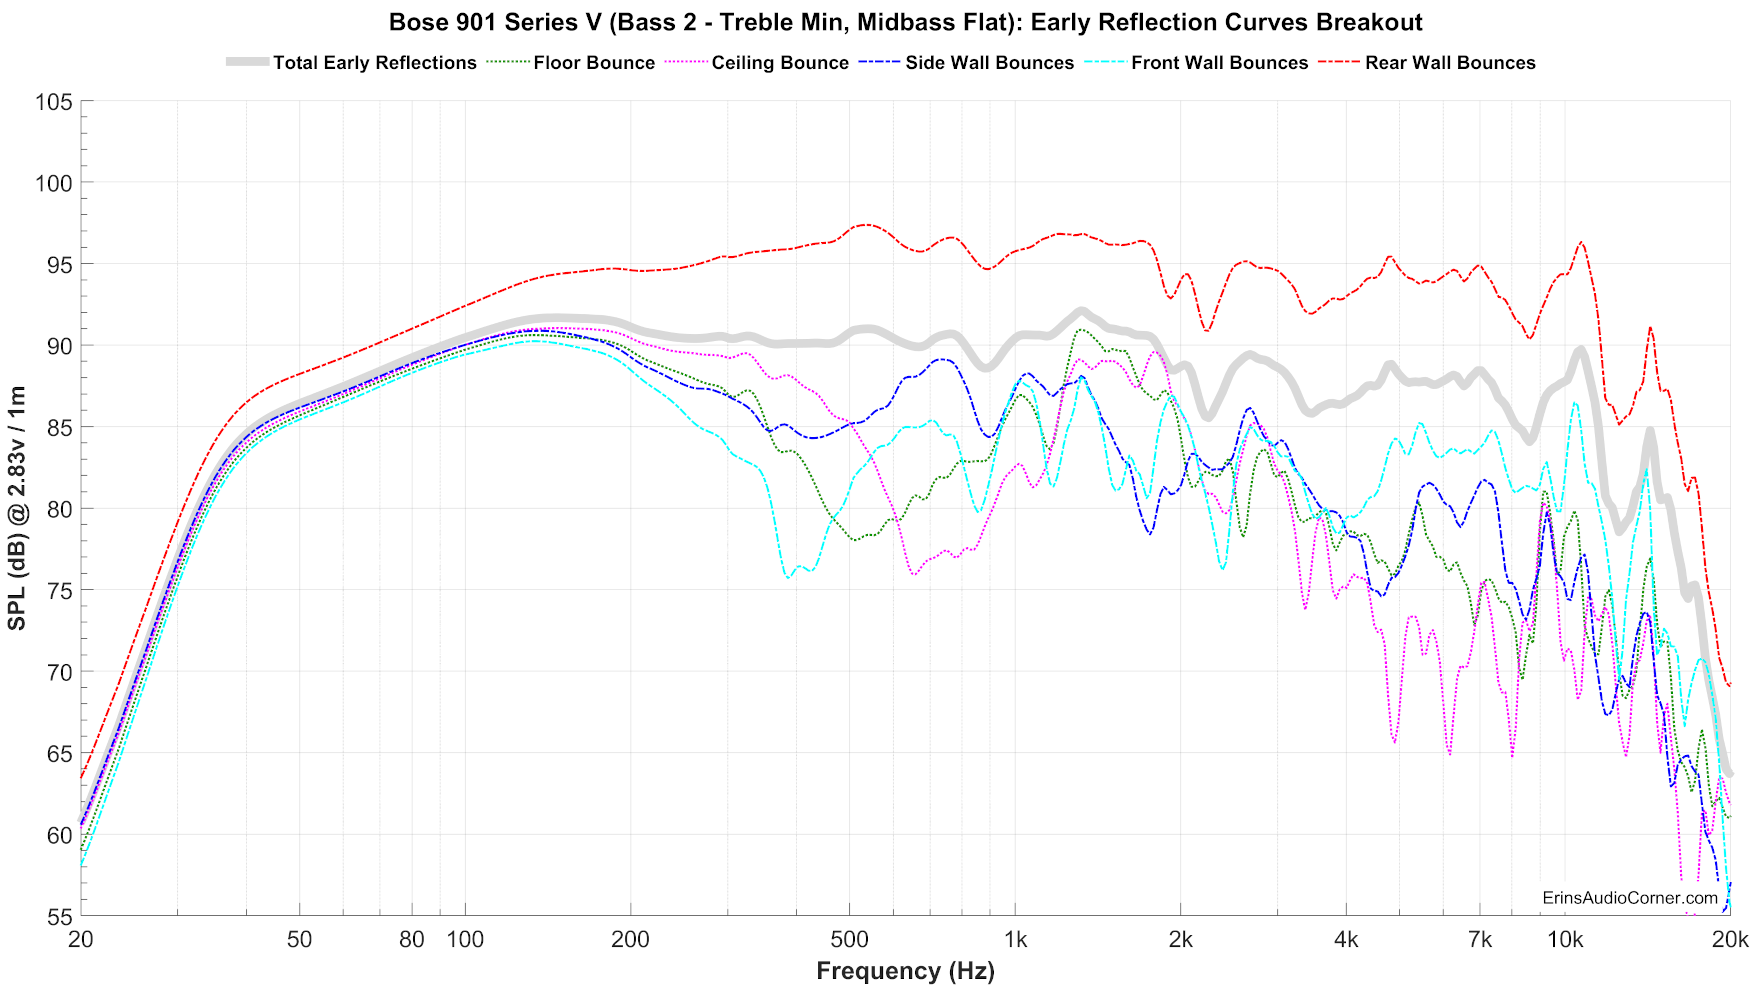 Bose%20901%20Series%20V%20(Bass%202%20-%20Treble%20Min,%20Midbass%20Flat)_Early_Reflections_Breakout.png